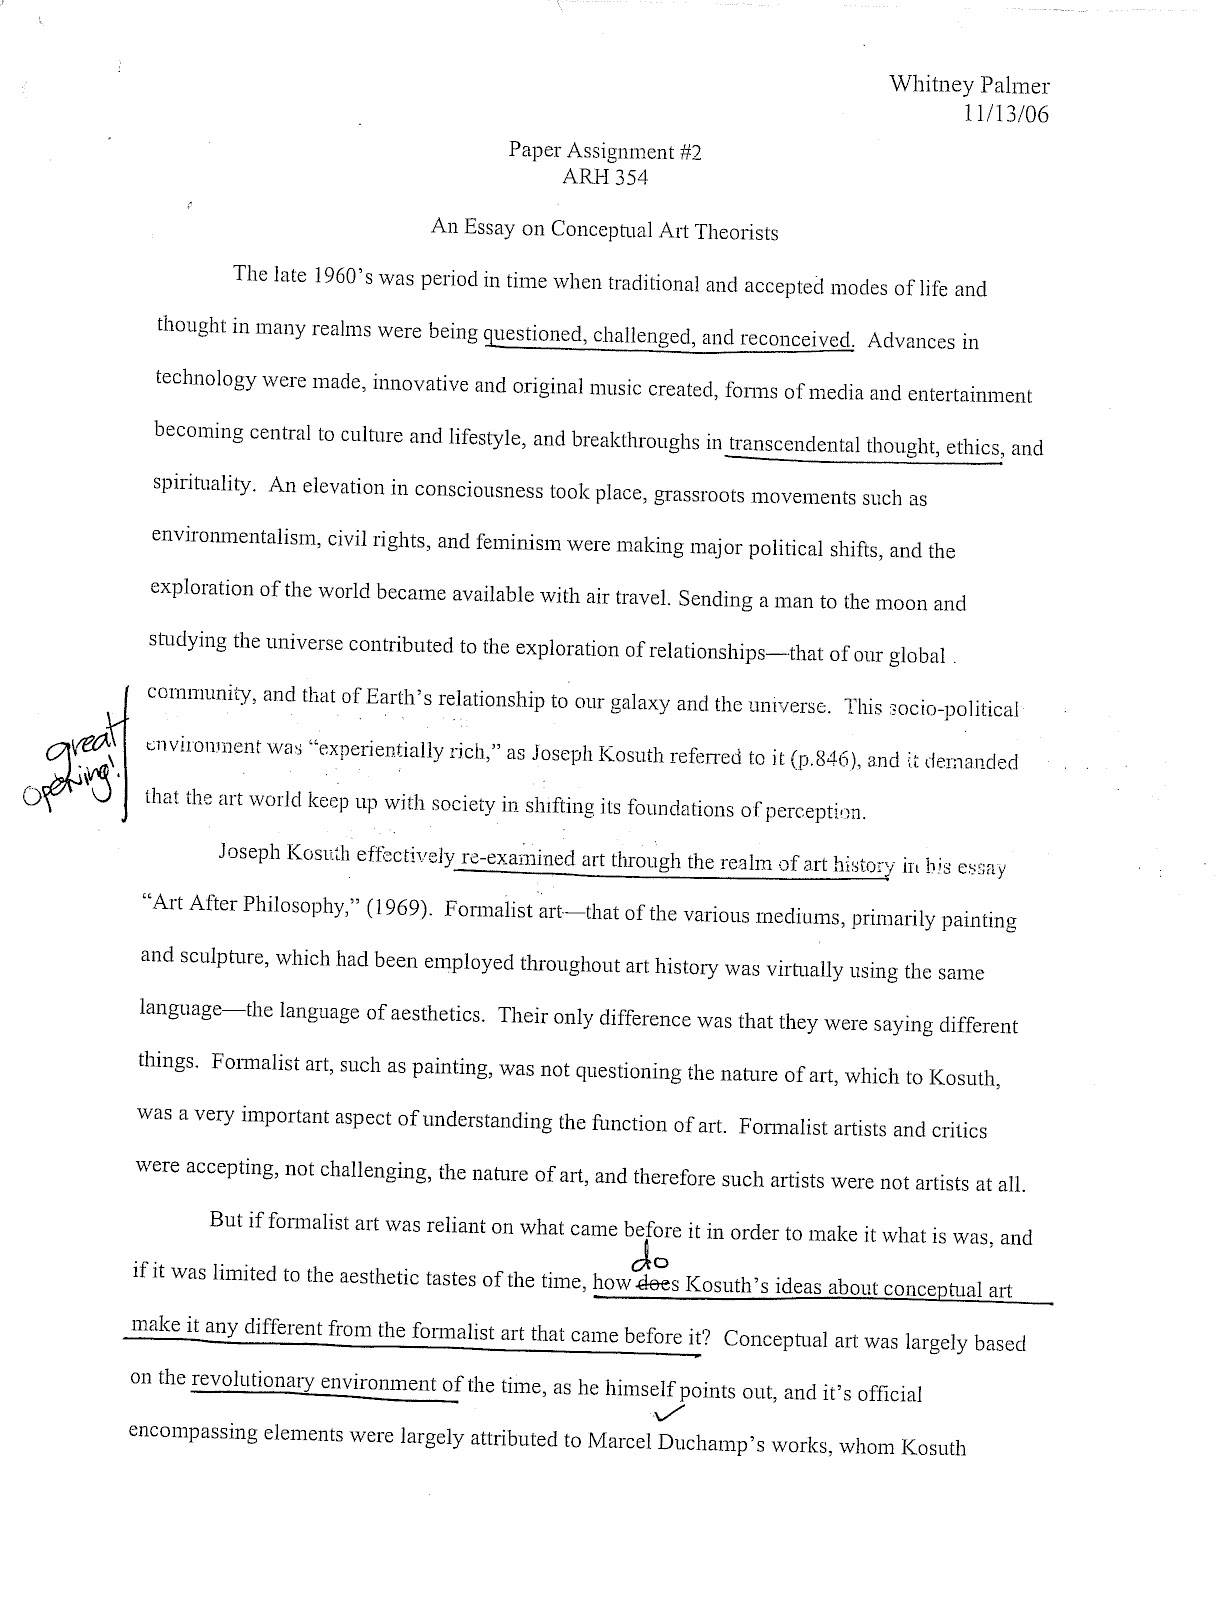 High School Essay Art History Essays Art History Essays Compucenter The Aim Of This Essay  From Art History Fall Compare Contrast Essay Papers also Health Essays What Is History Essay Essay For Science Essay About Science Essay  Political Science Essay